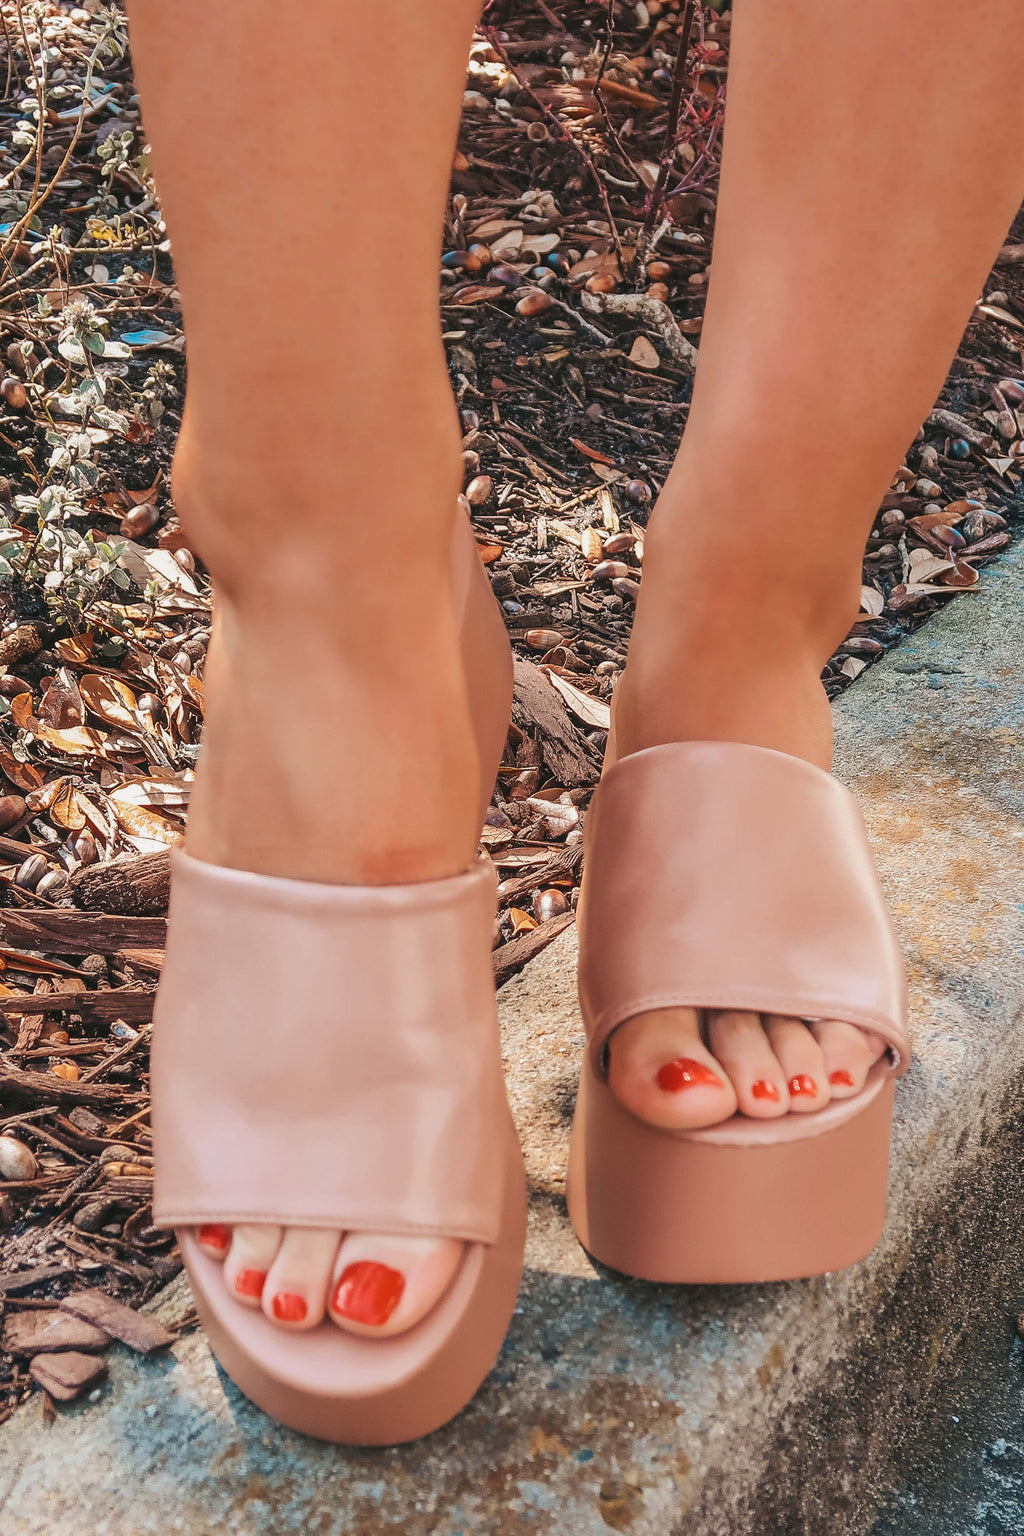 For The Look Wedges: Nude